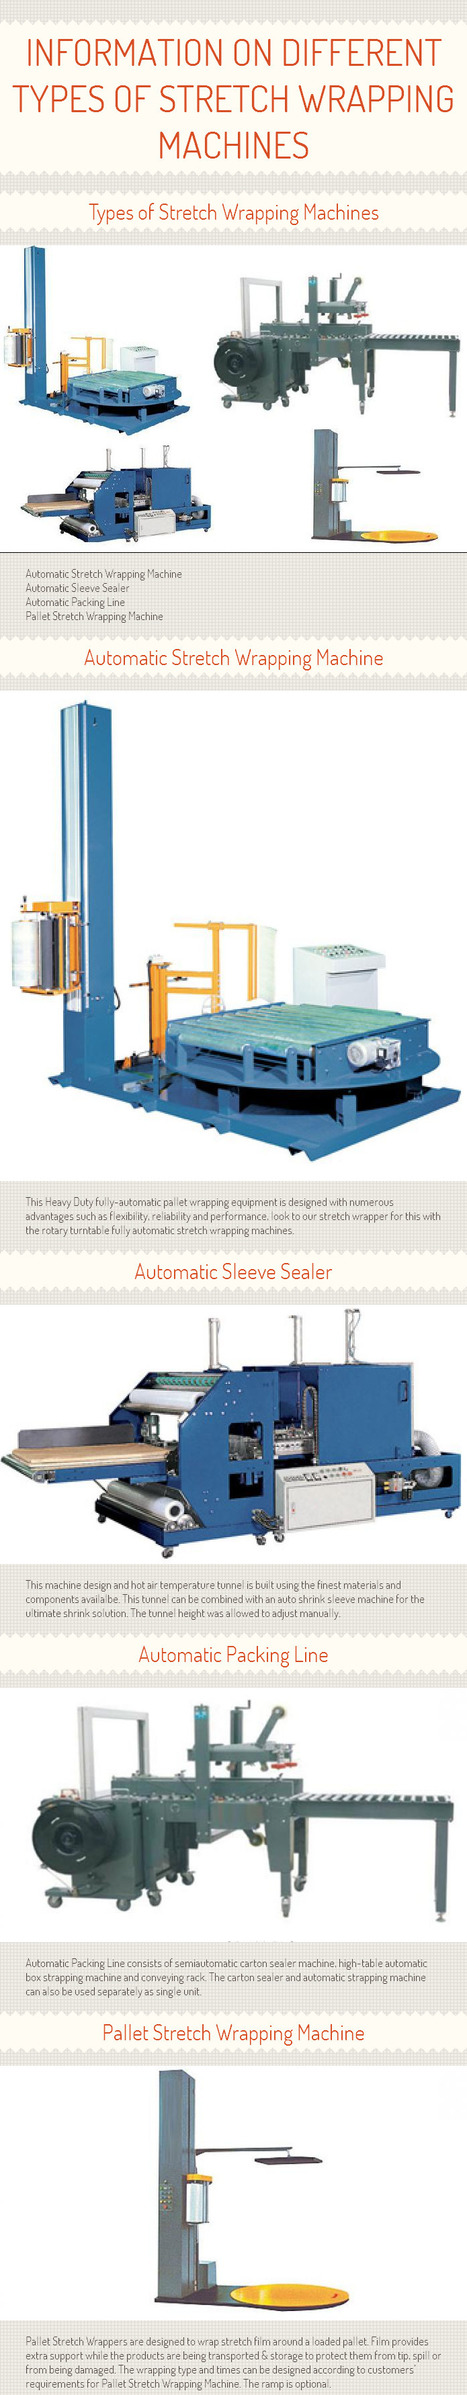 Information on Different Types of Stretch Wrapping Machines [INFOGRAPH] | Shrink Tunnel | Scoop.it